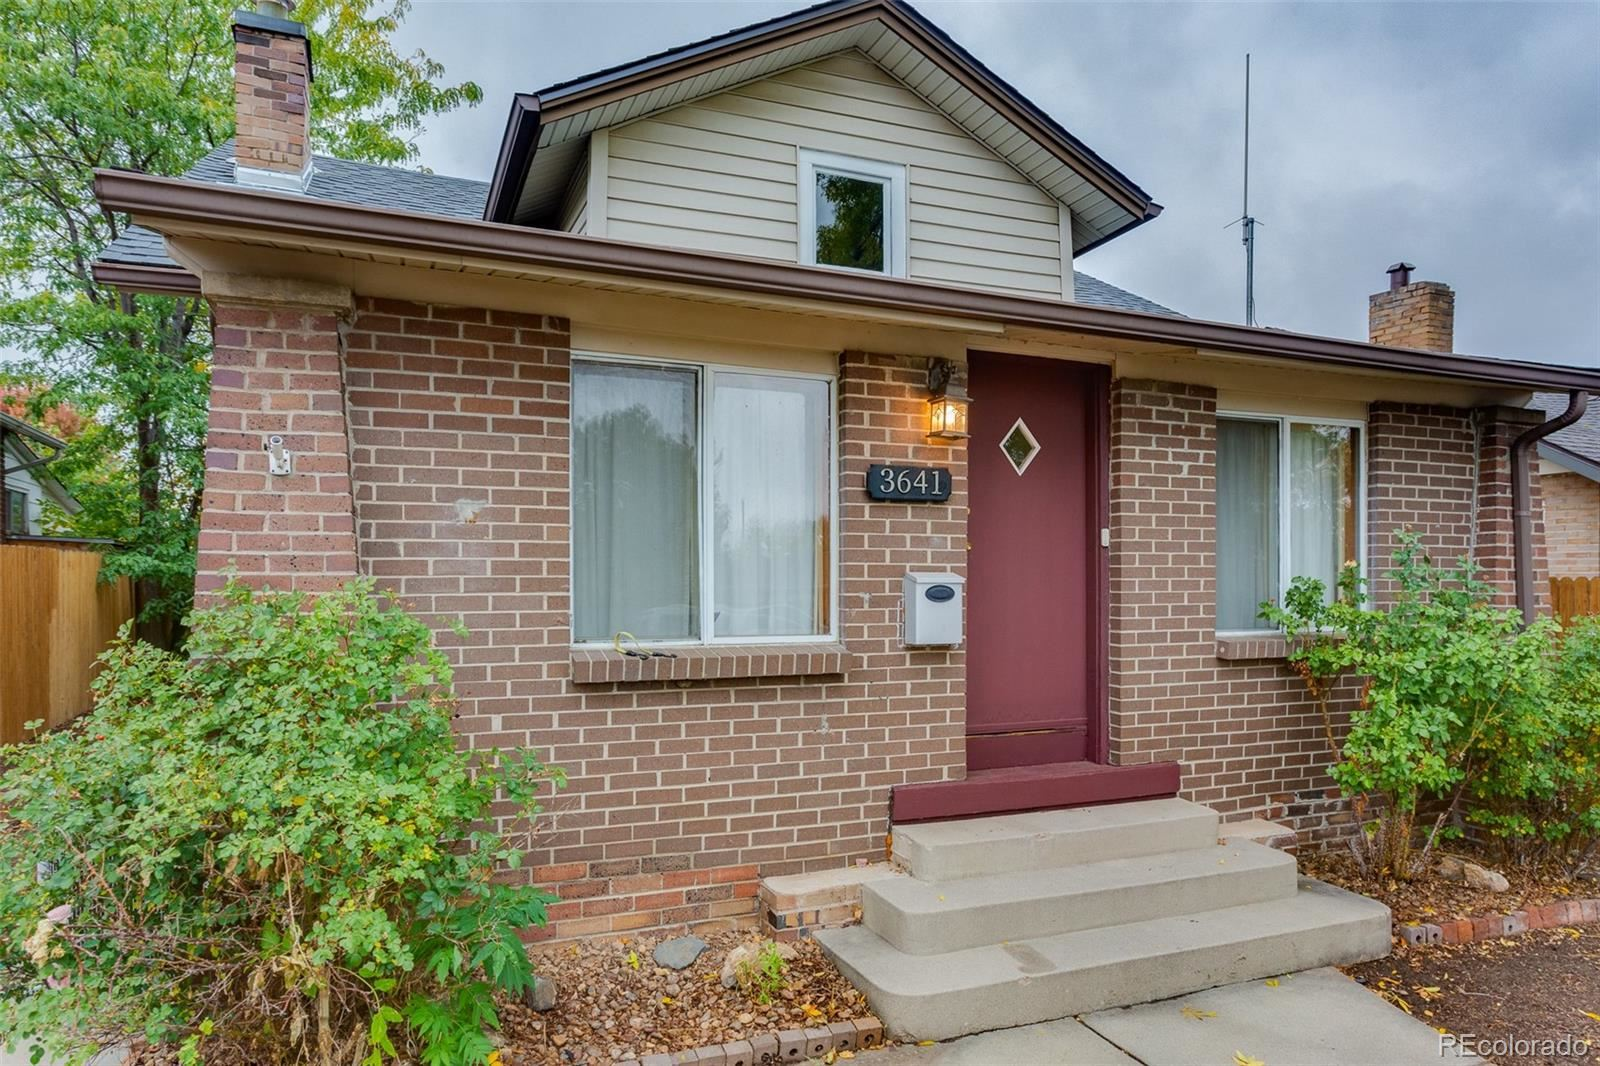 3641 N Garfield Street, Denver, CO 80205 - #: 3368298